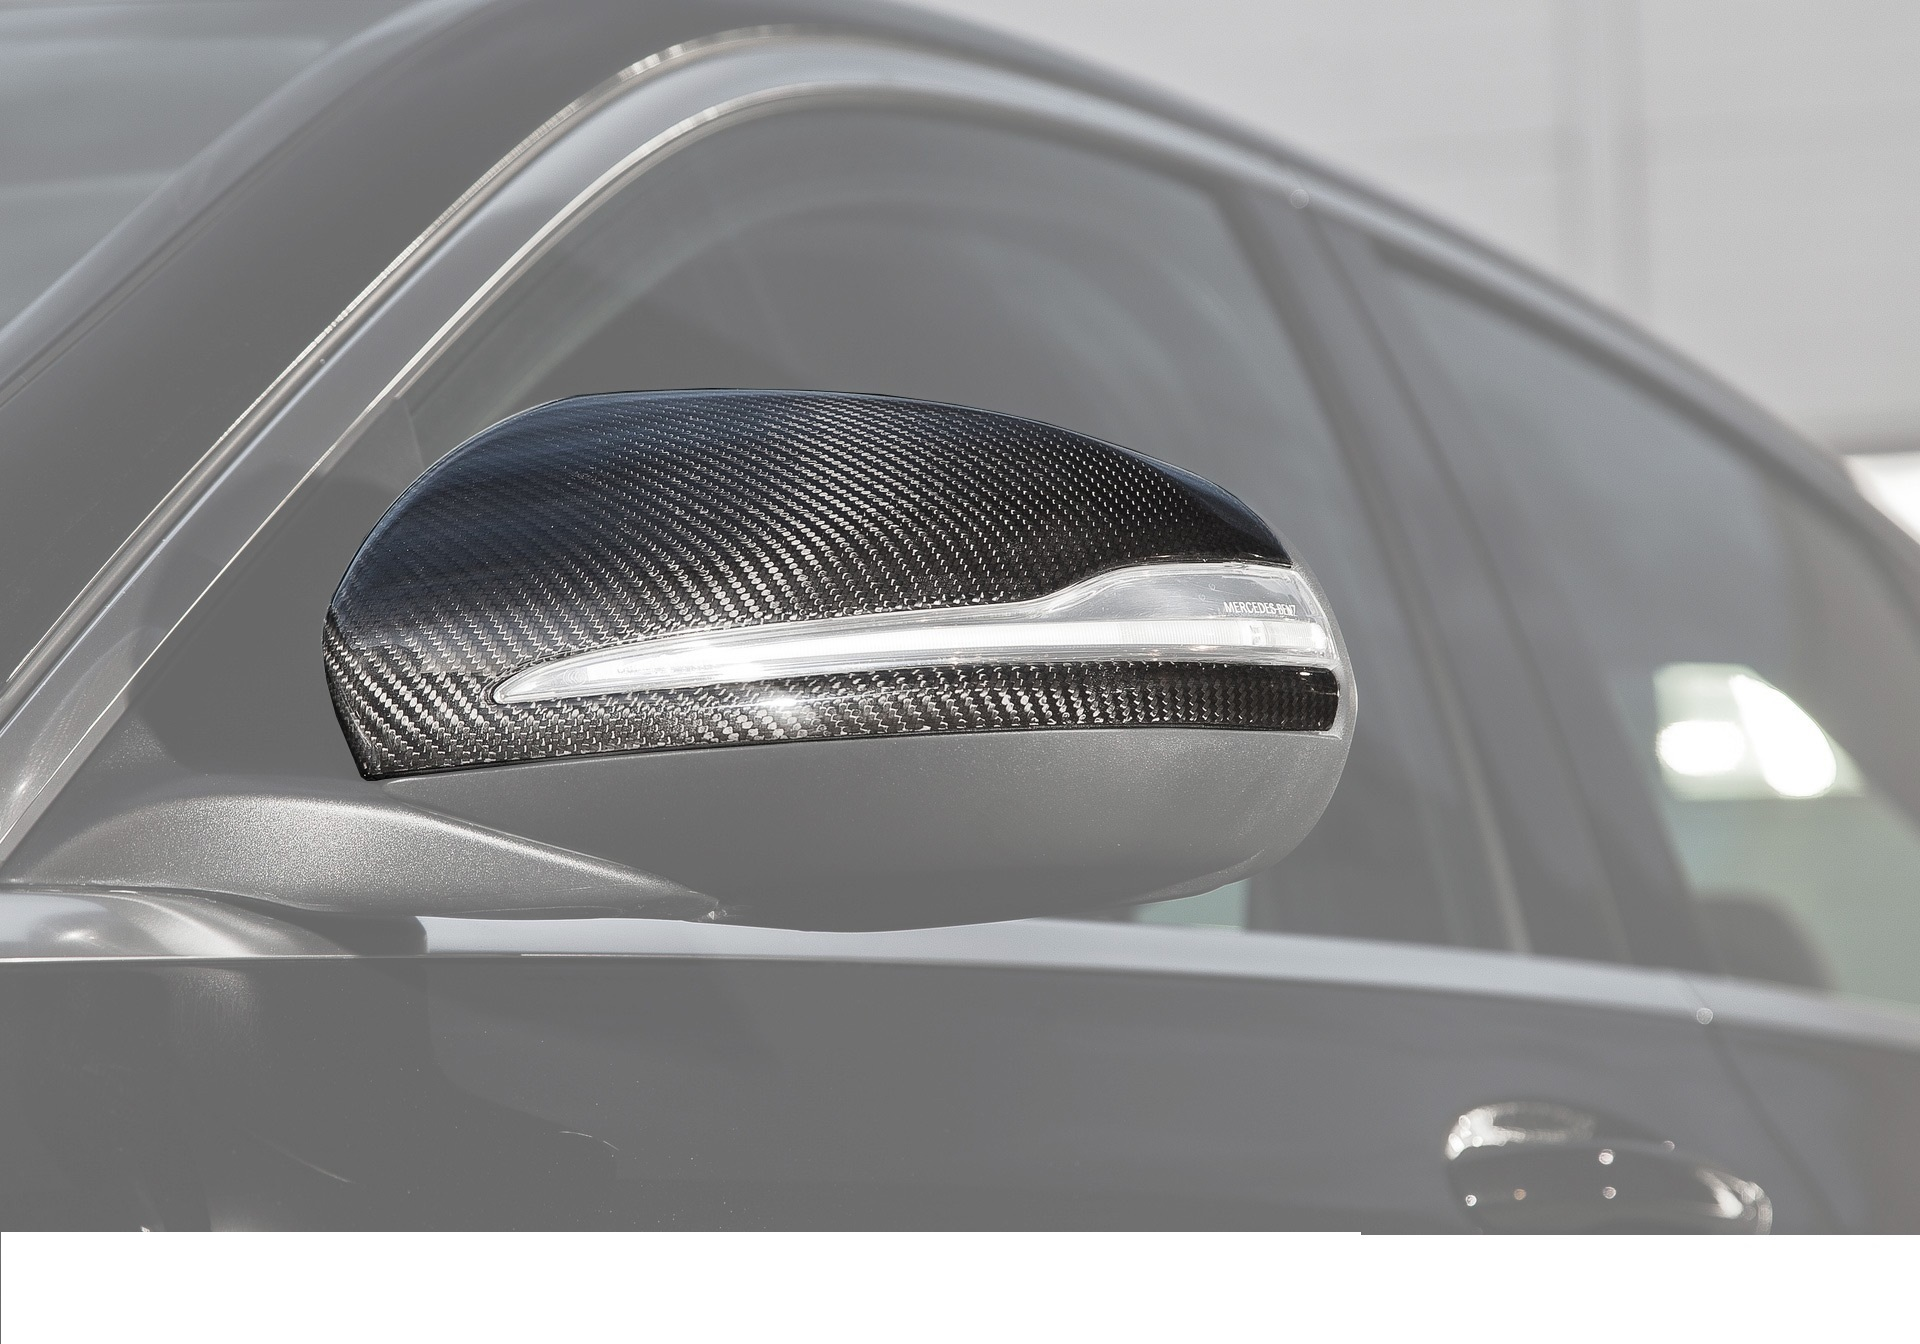 Hodoor Performance Carbon fiber mirror linings 63 AMG Brabus Style for Mercedes C-class W205